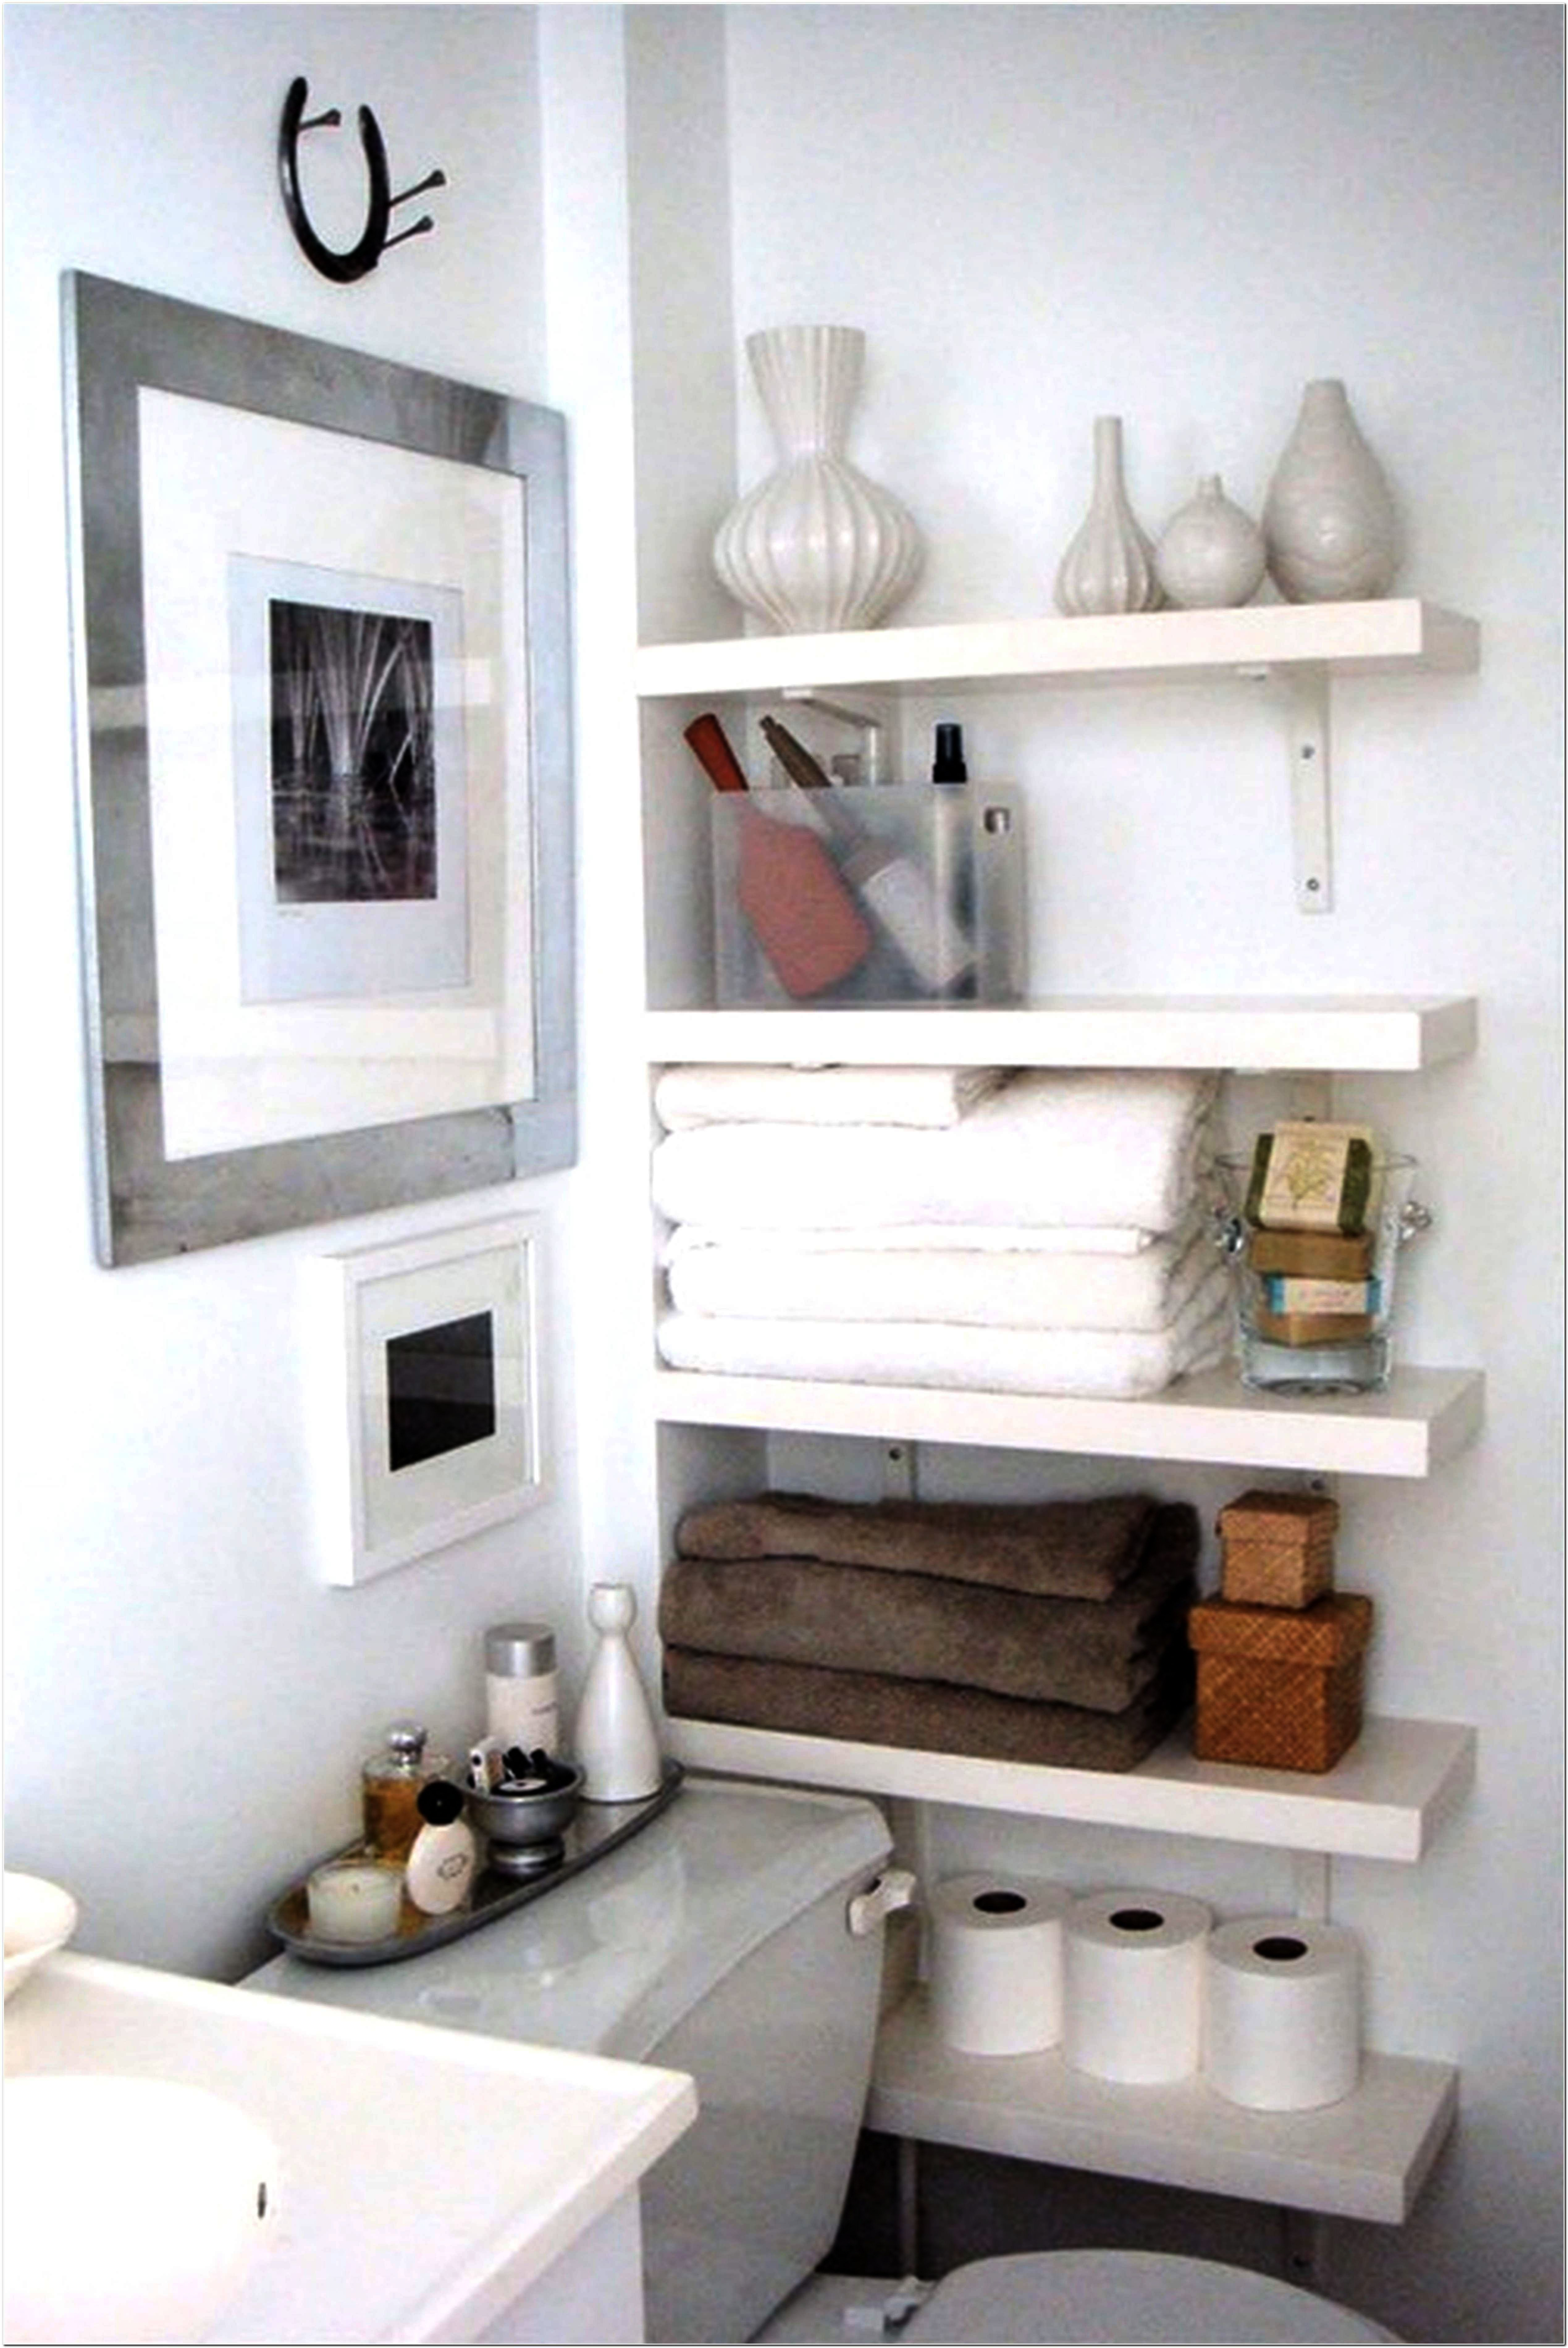 Keep Clutter At Bay With These Smart Small Space Storage